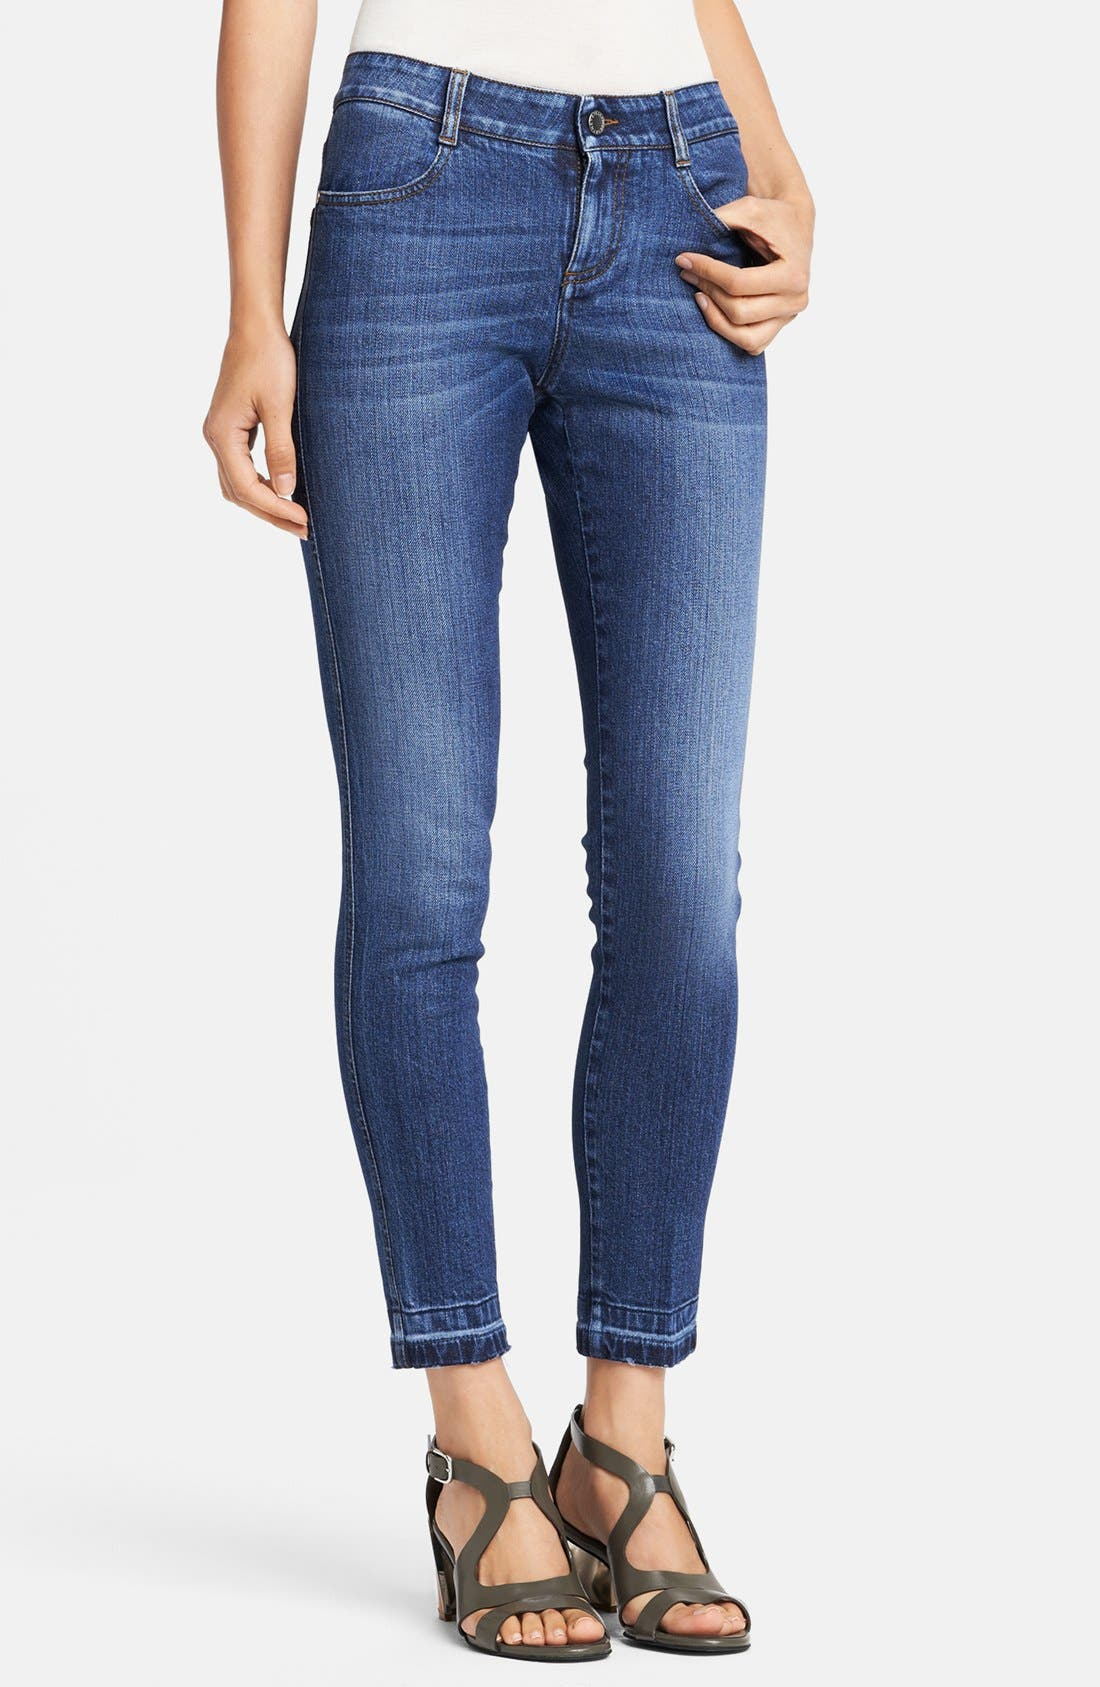 Alternate Image 1 Selected - Stella McCartney 'Simone' Ripped Hem Skinny Ankle Grazer Jeans